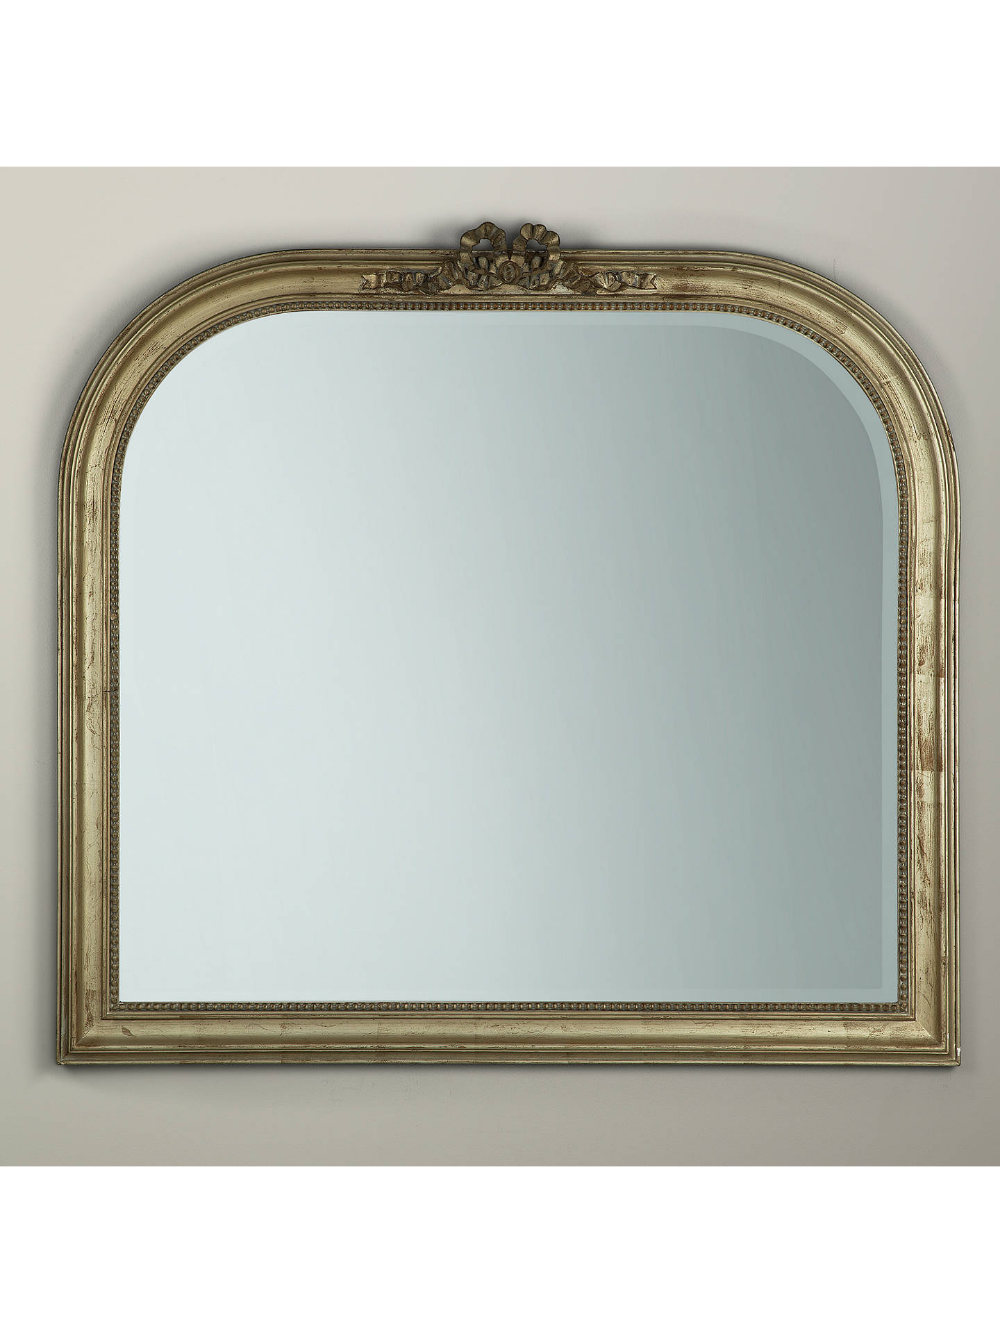 Overmantel Bow Mirror, Gold, 95 x 106cm in 2020 Mirror